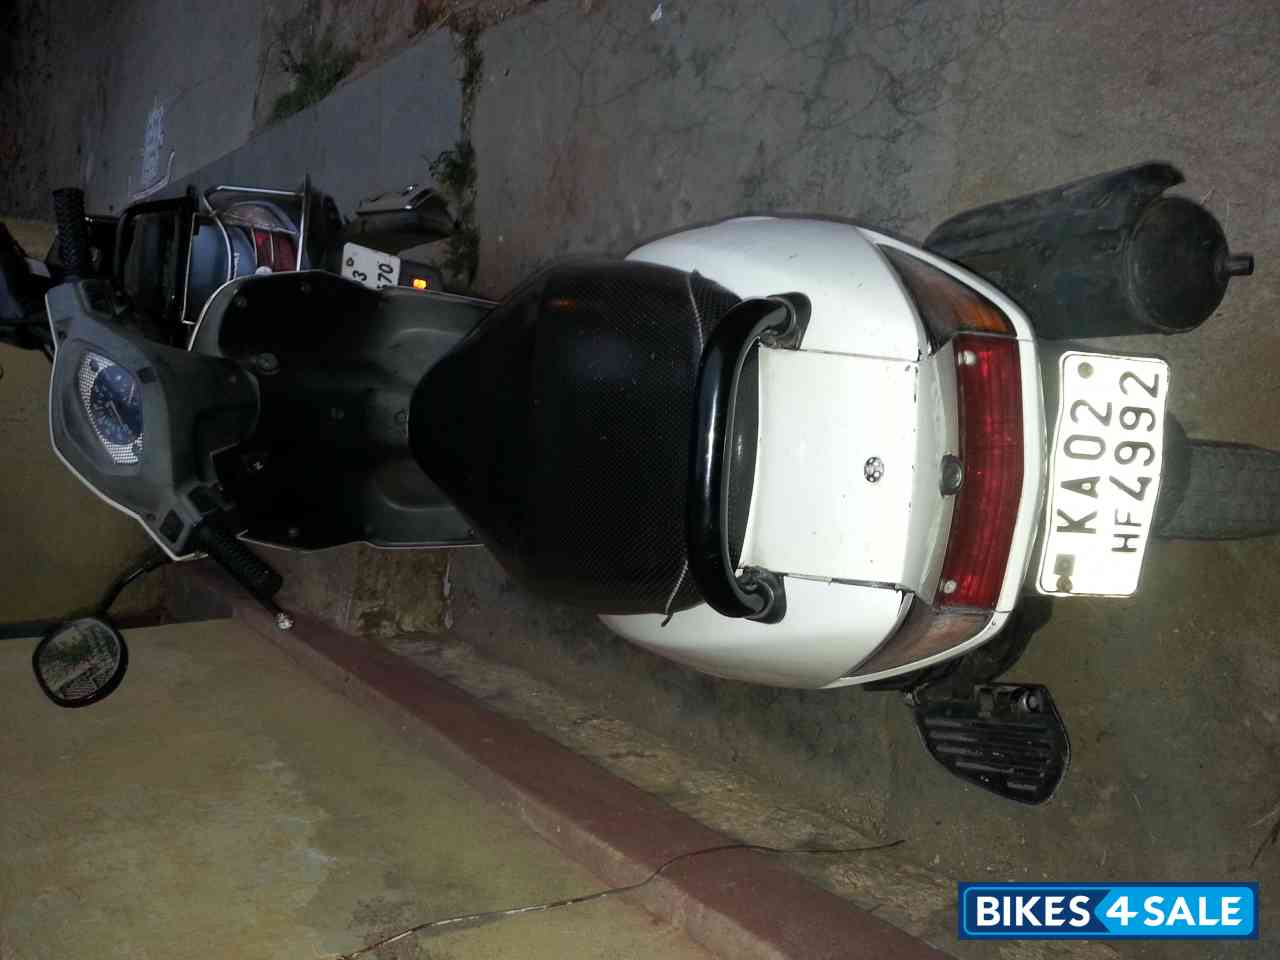 Snap Honda Dio Price I Am Planning To Buy Bikes Bike Stickers Design Fsilver For Sale In Bangalore Hi Selling My 2009 Model Deo